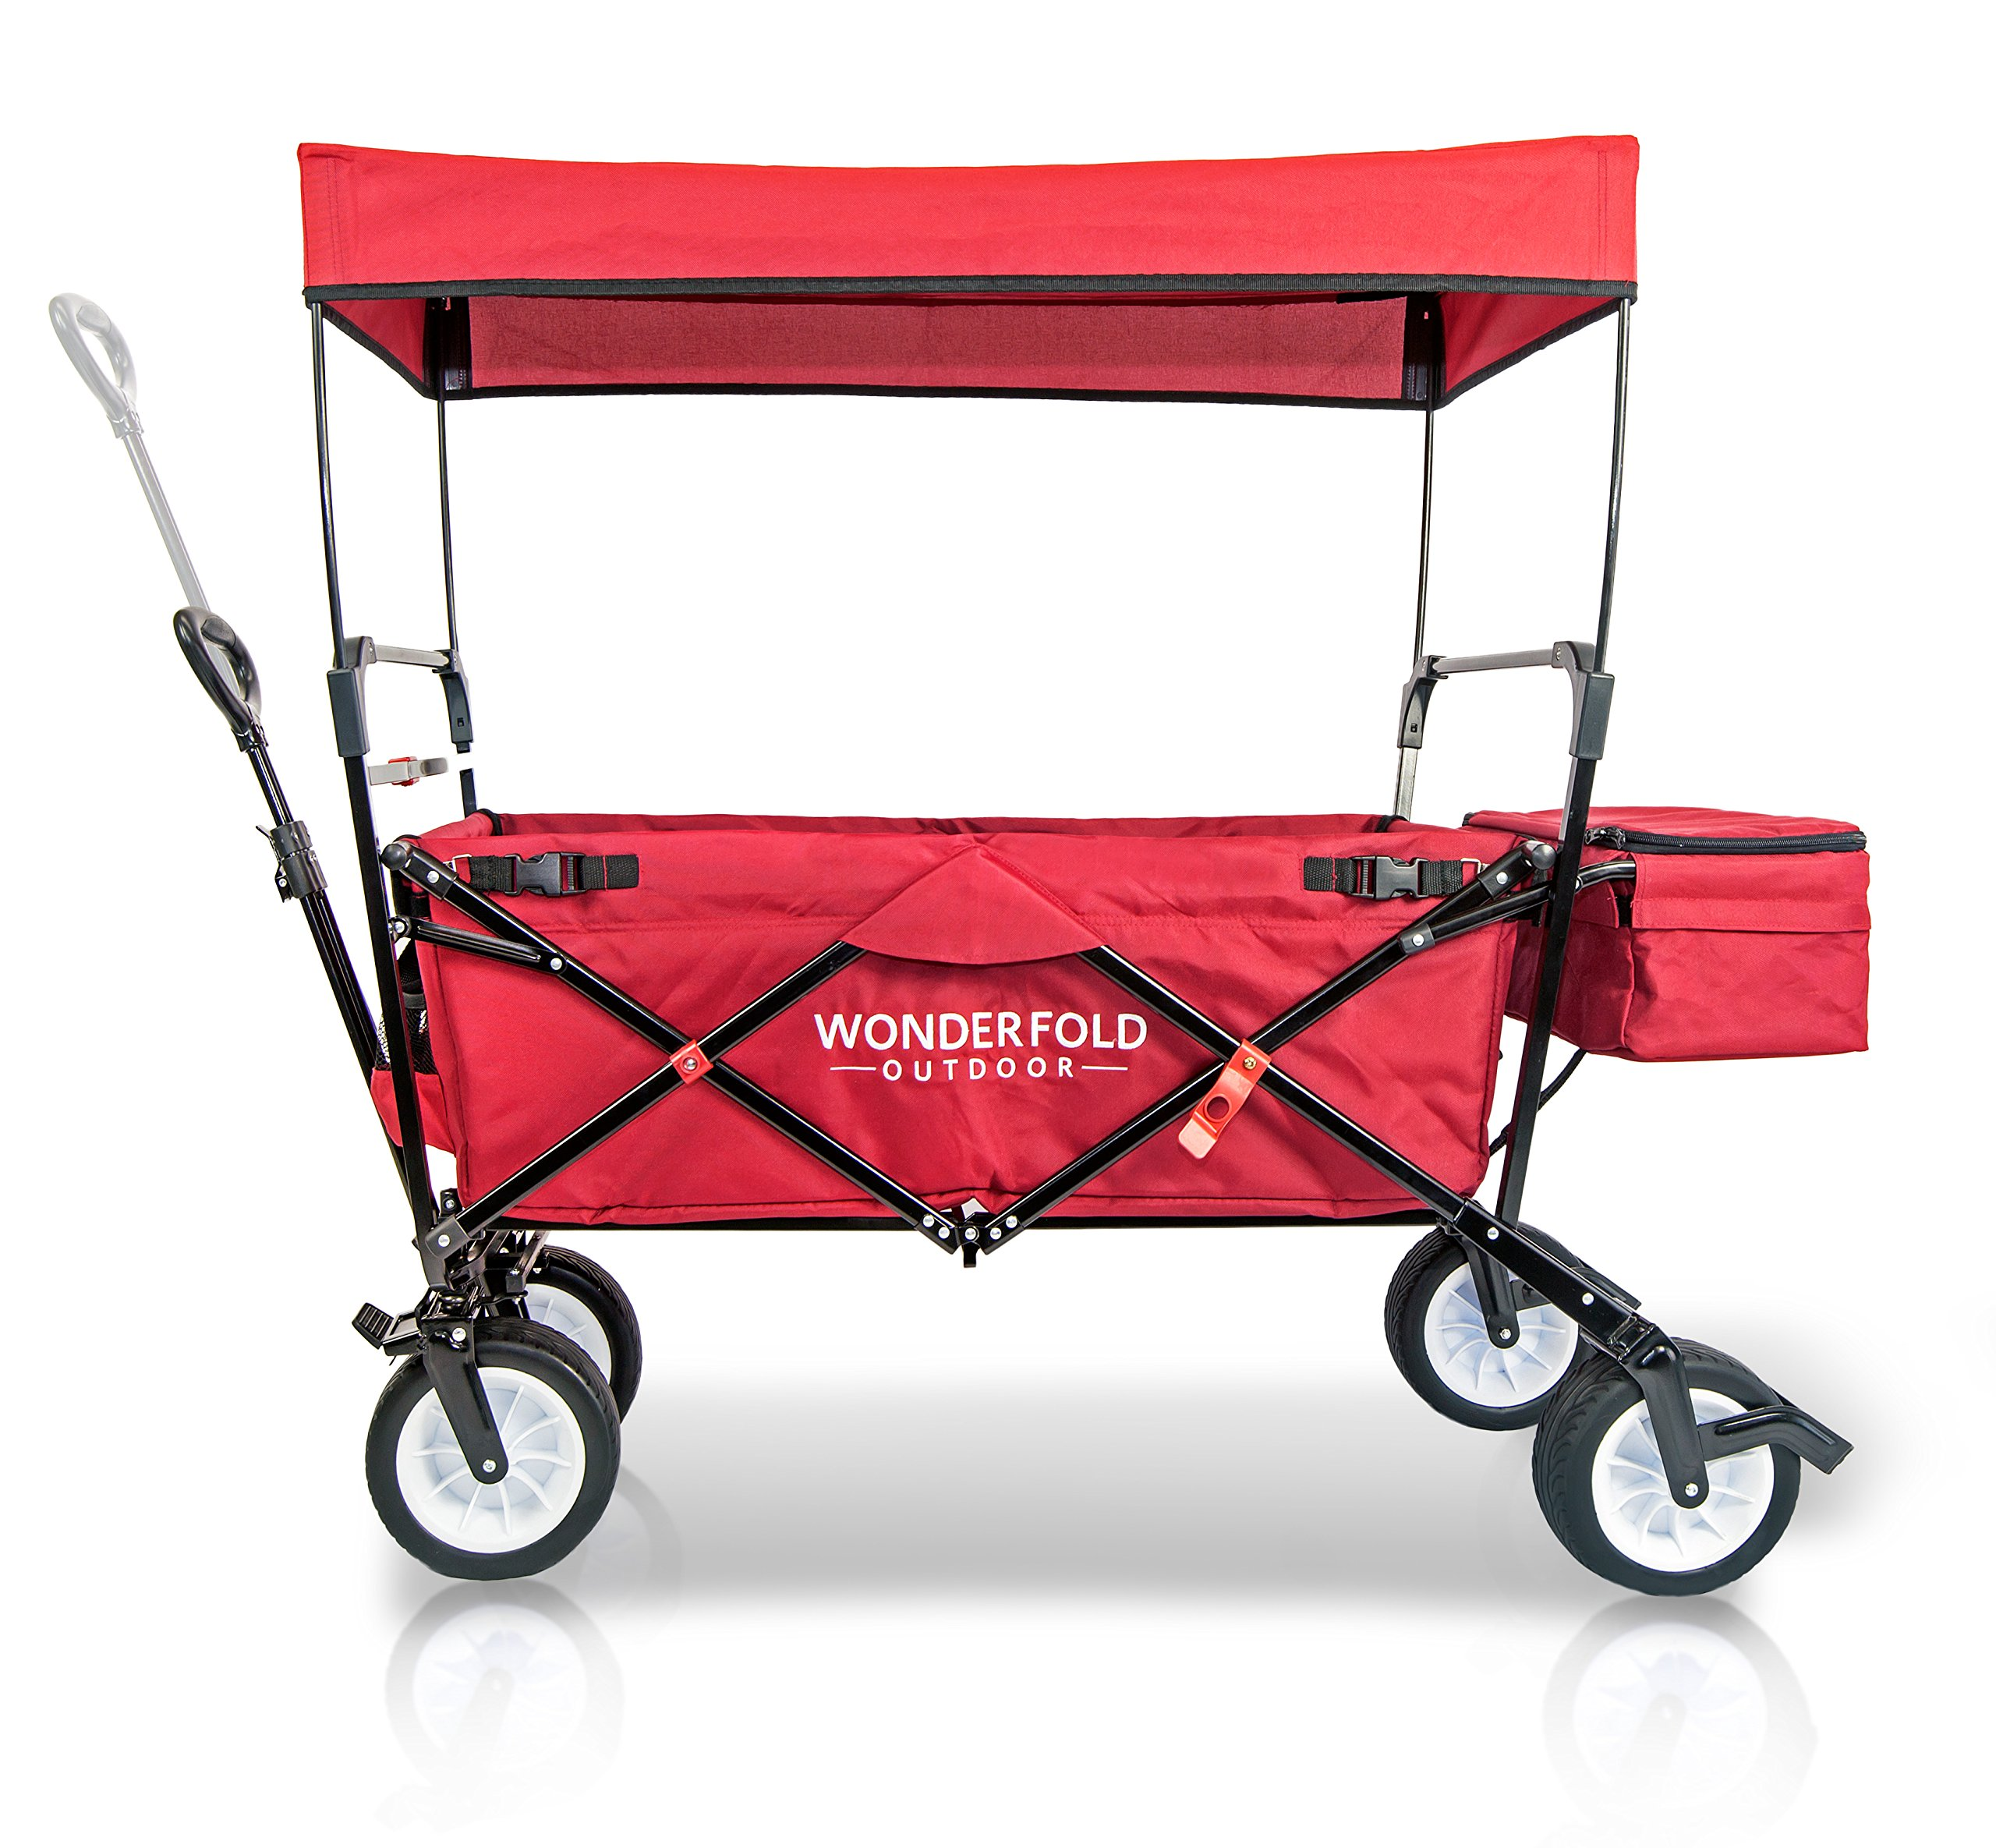 WonderFold Outdoor NEW GENERATION Collapsible Folding Wagon with Canopy - Premium Features: Auto Safety Locks, Spring Bounce, One Pedal Brake, Stand, EVA Wide Tire (Ruby Red) by Everyday Sports